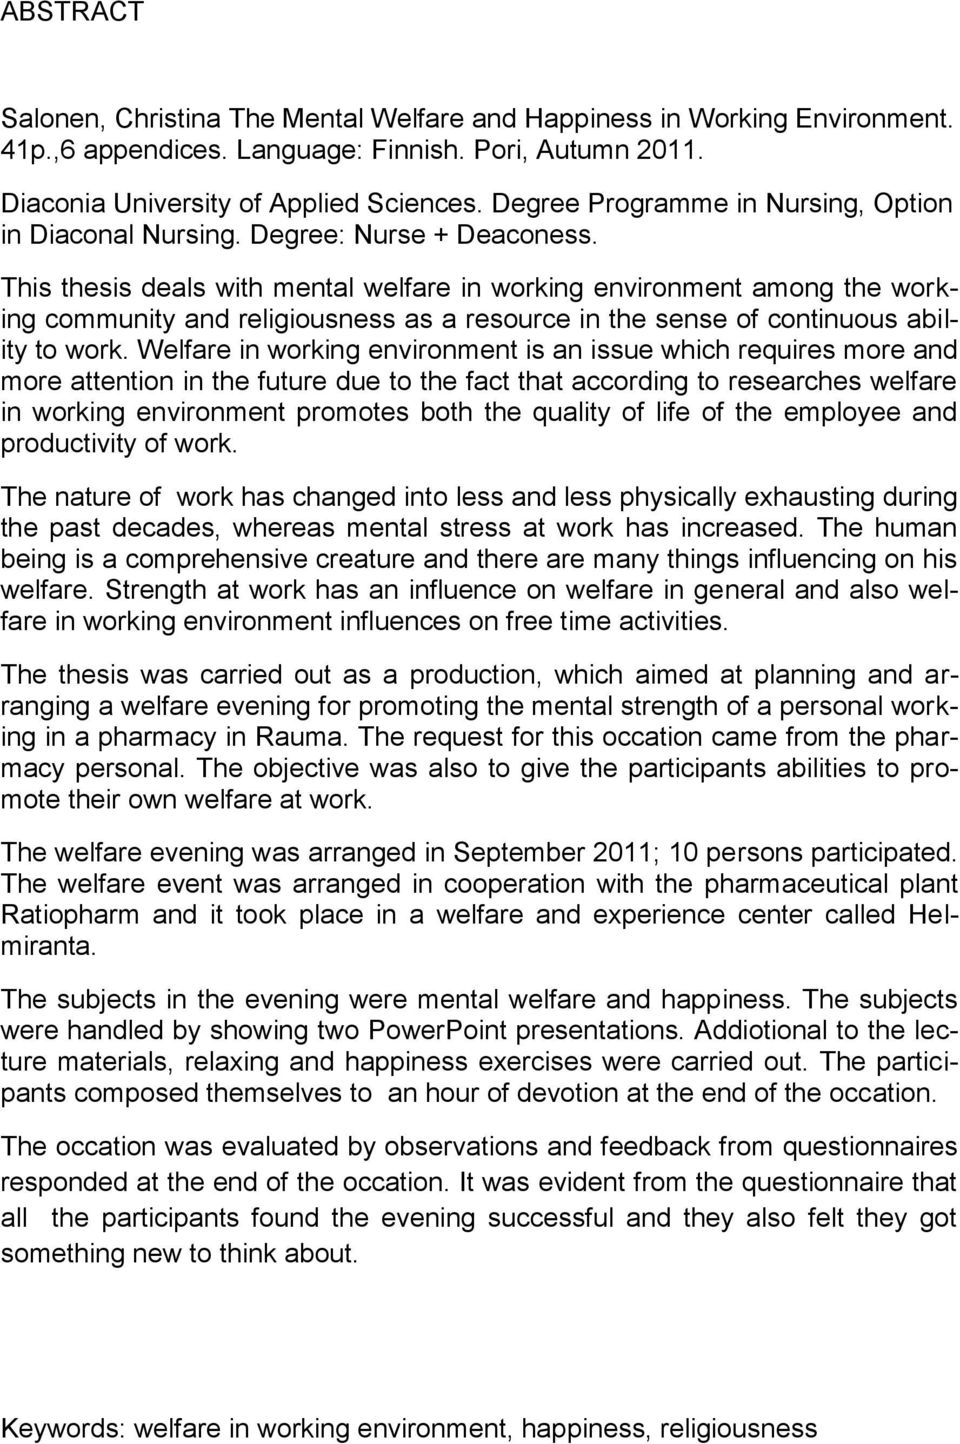 This thesis deals with mental welfare in working environment among the working community and religiousness as a resource in the sense of continuous ability to work.